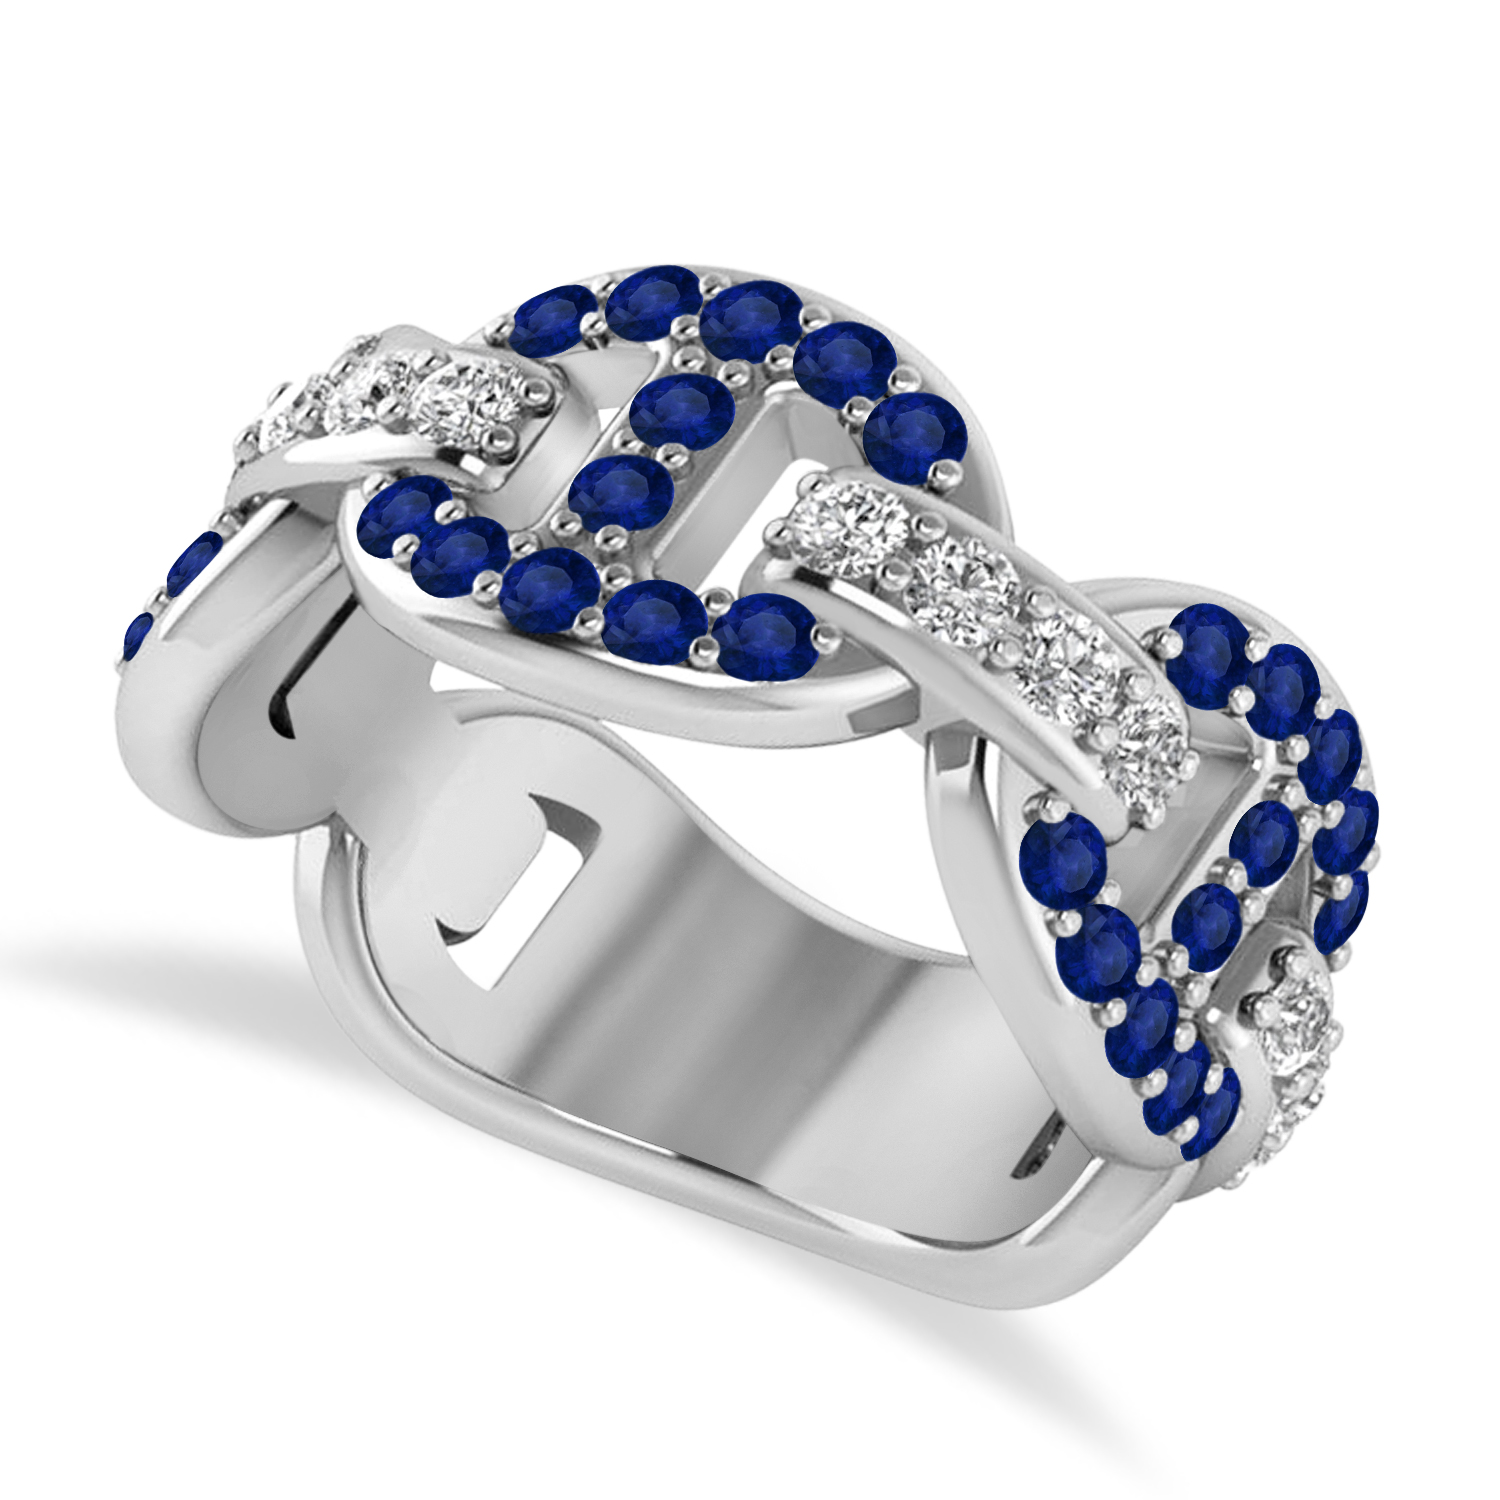 Diamond Accented Ladies Blue Sapphire Link Ring 14k White Gold (1.20 ctw)